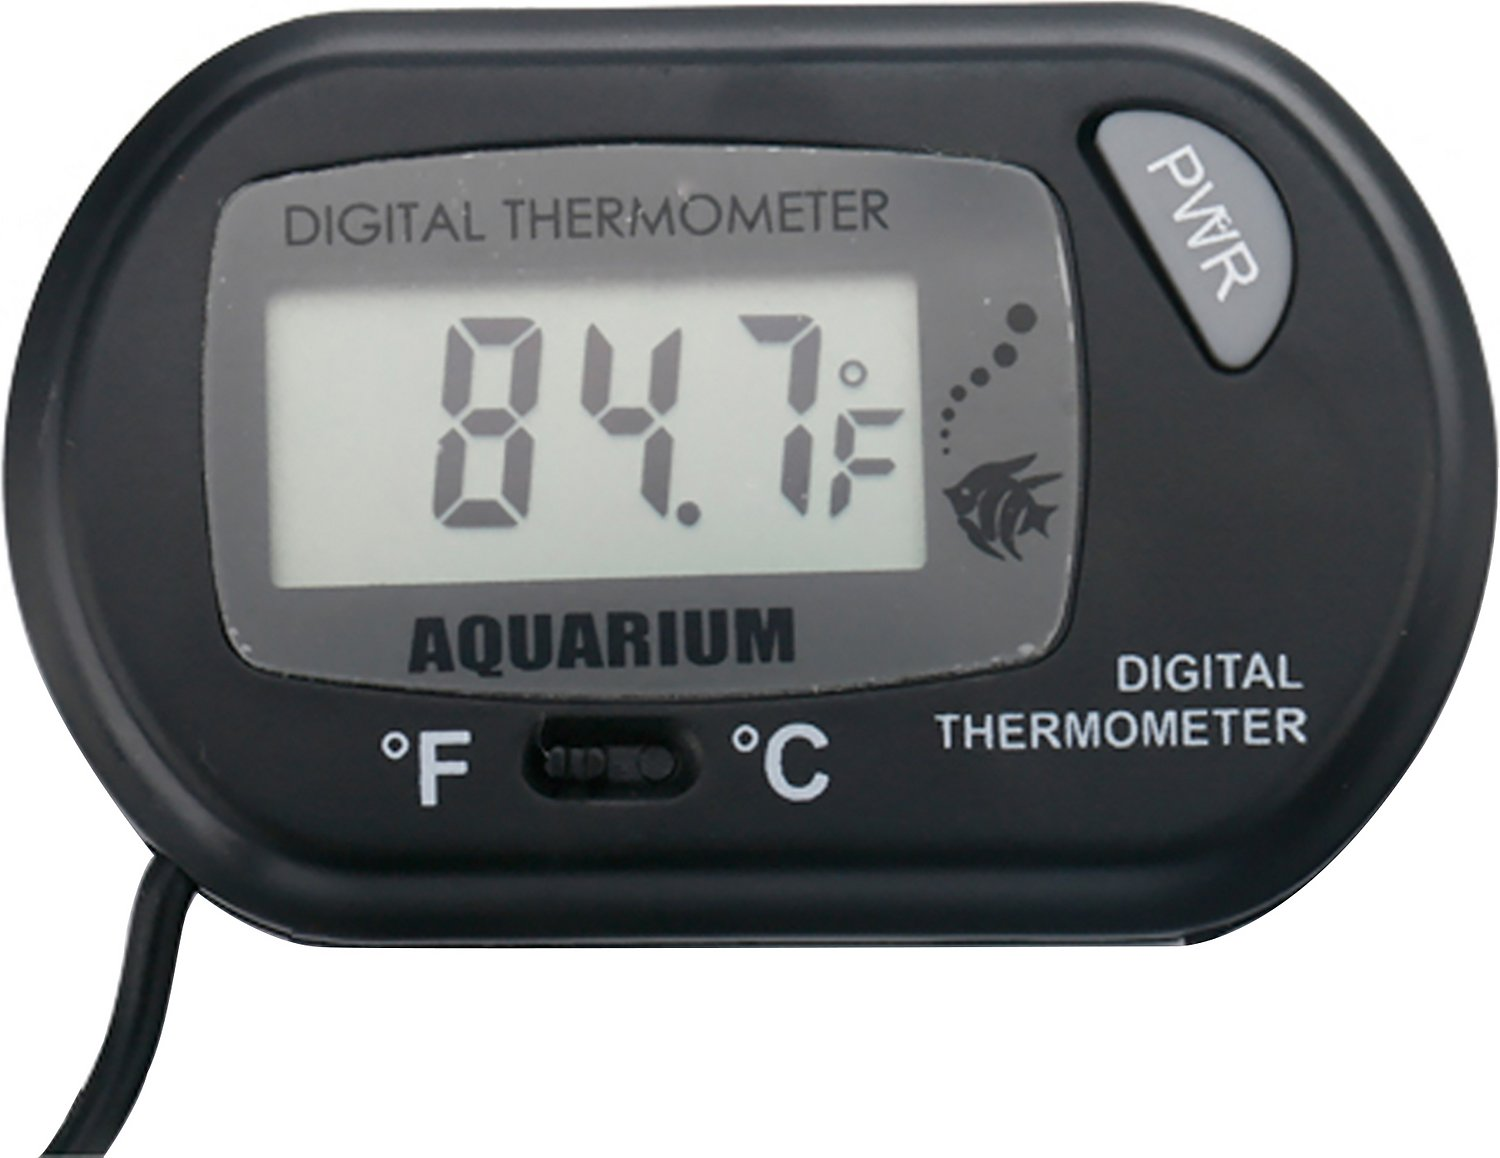 Hde lcd digital aquarium thermometer for Aquarium thermometer